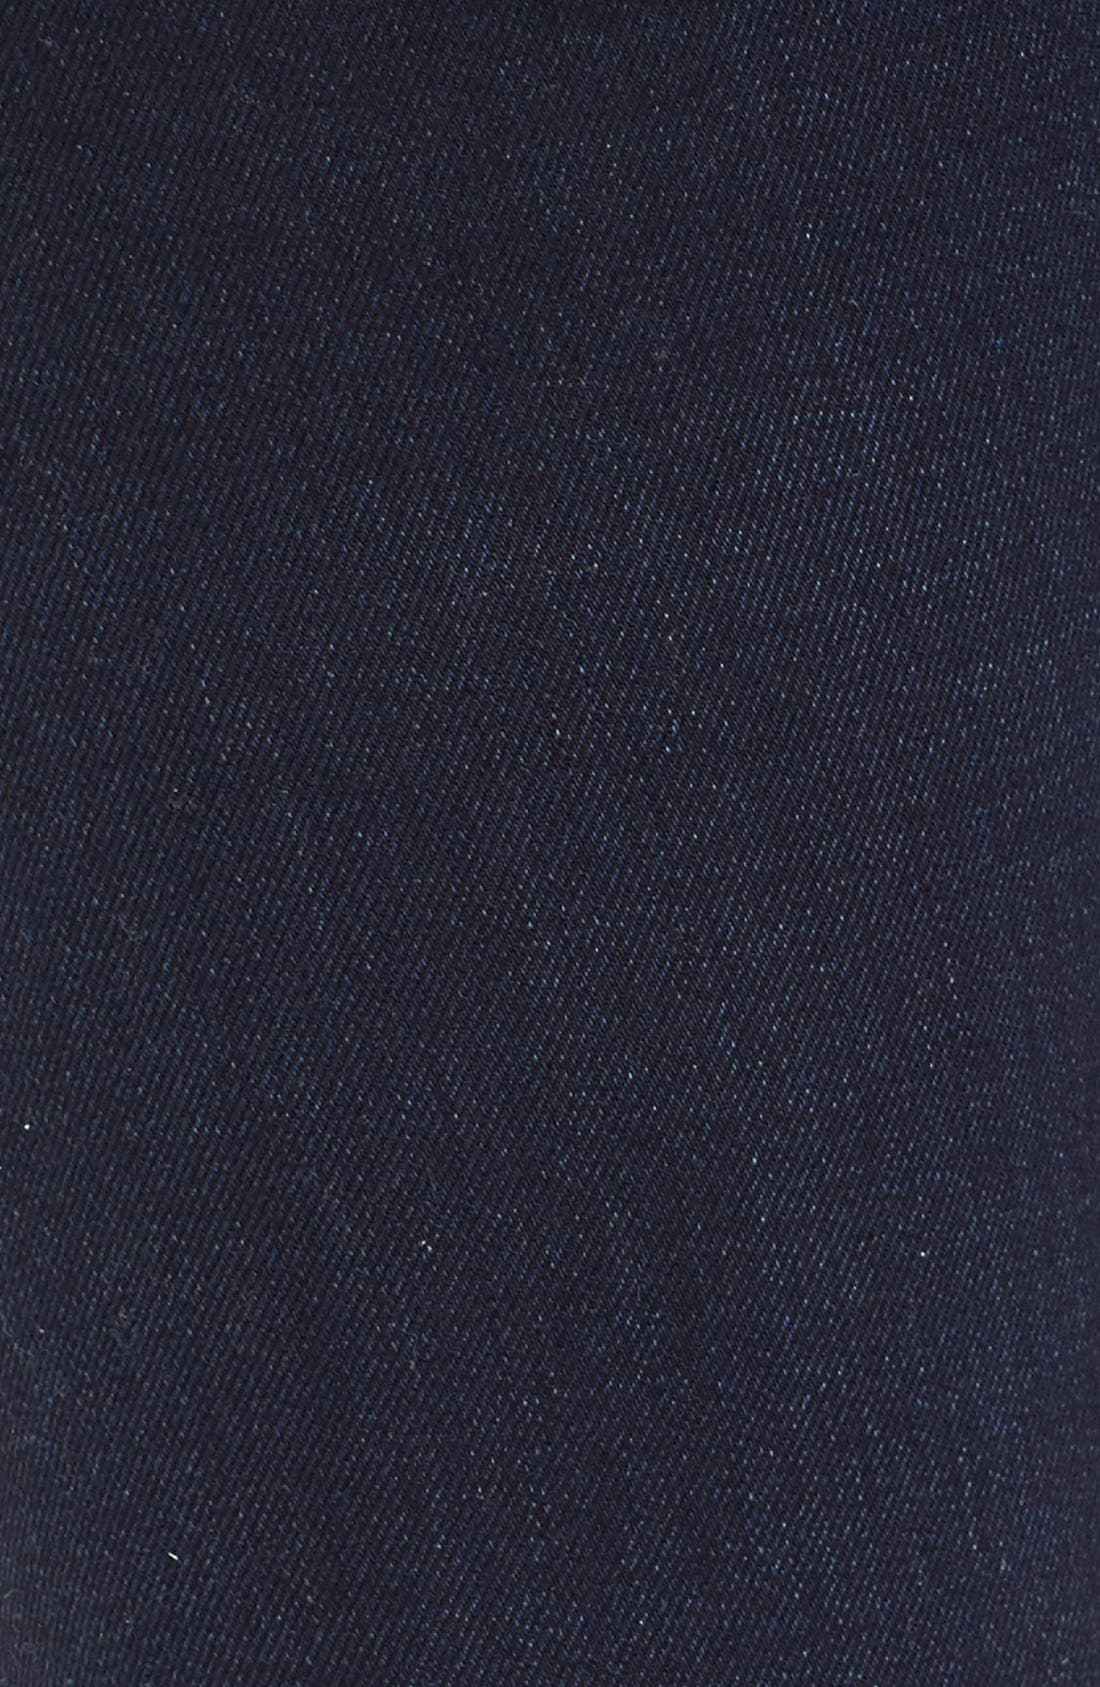 'Nico' Ankle Skinny Jeans,                             Alternate thumbnail 18, color,